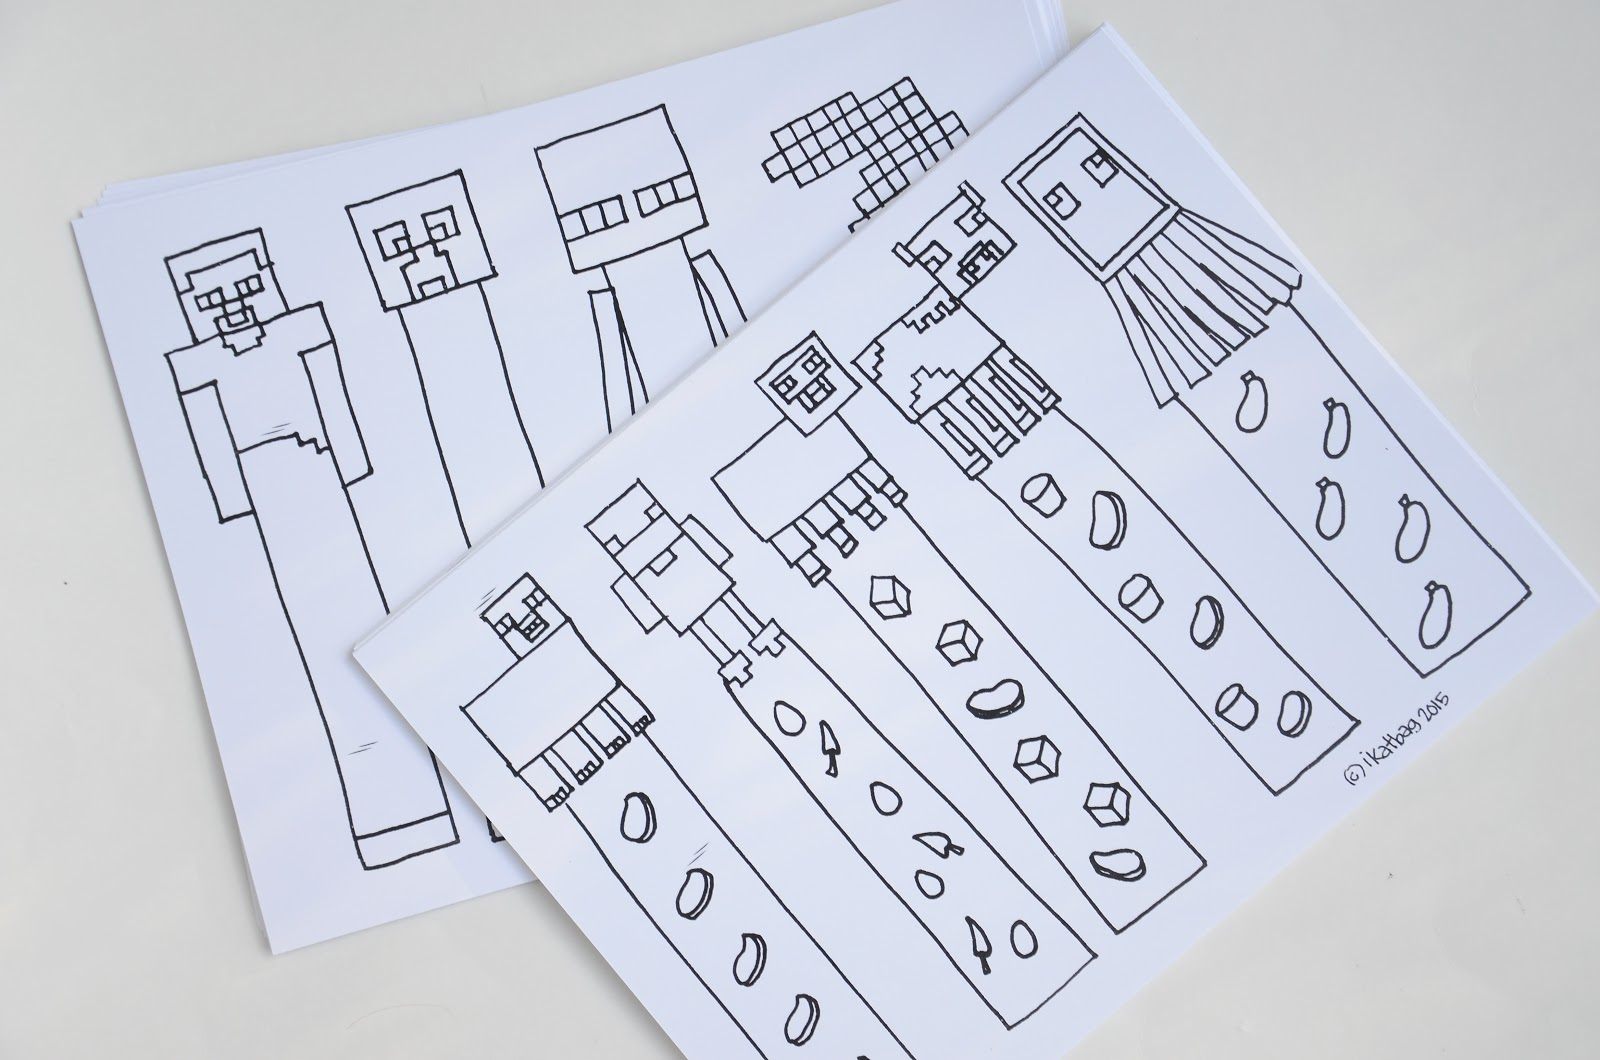 photograph about Minecraft Bookmarks Printable called ikat bag: Minecraft Occasion: Coloring Bookmarks, Composing